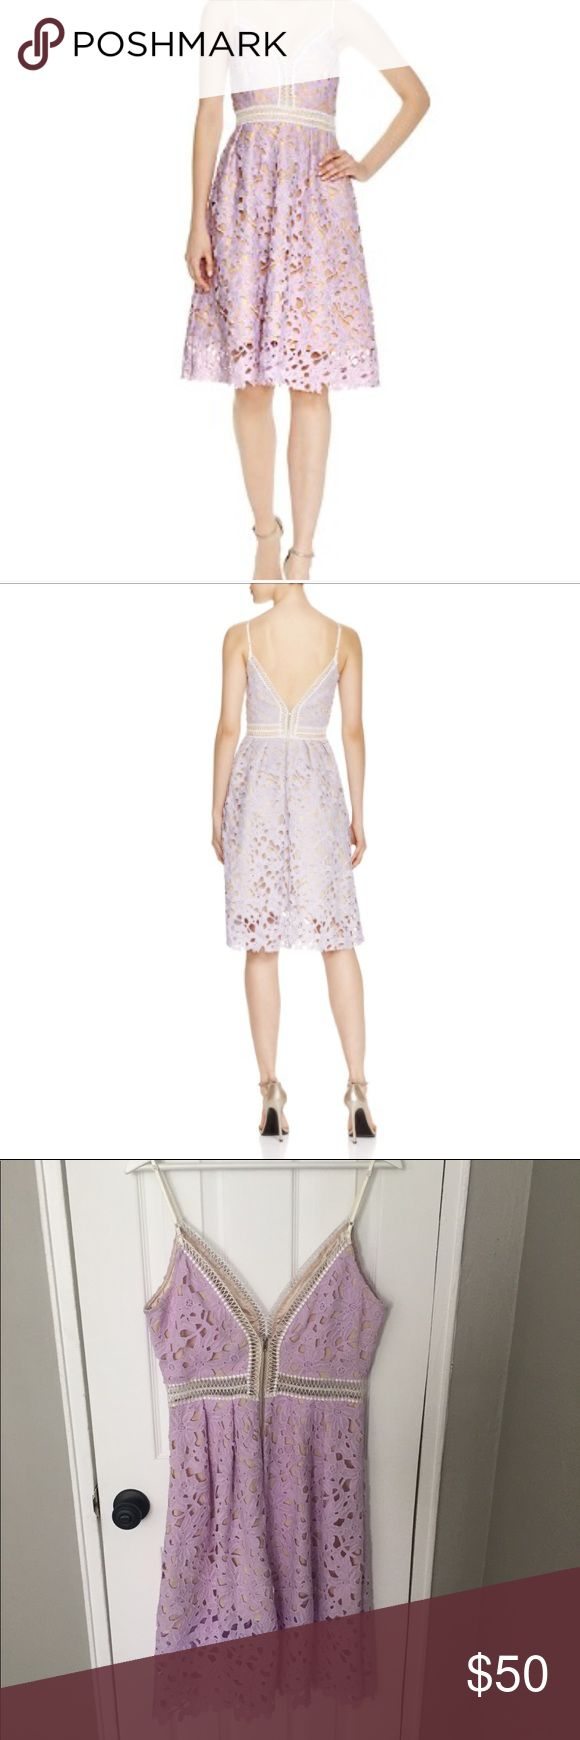 Bloomingdales Aqua Purple Lace Midi Dress Perfect cocktail or spring wedding dress. Gorgeous floral lace detail. Zipper closure in the back. Bloomingdale's Dresses Midi